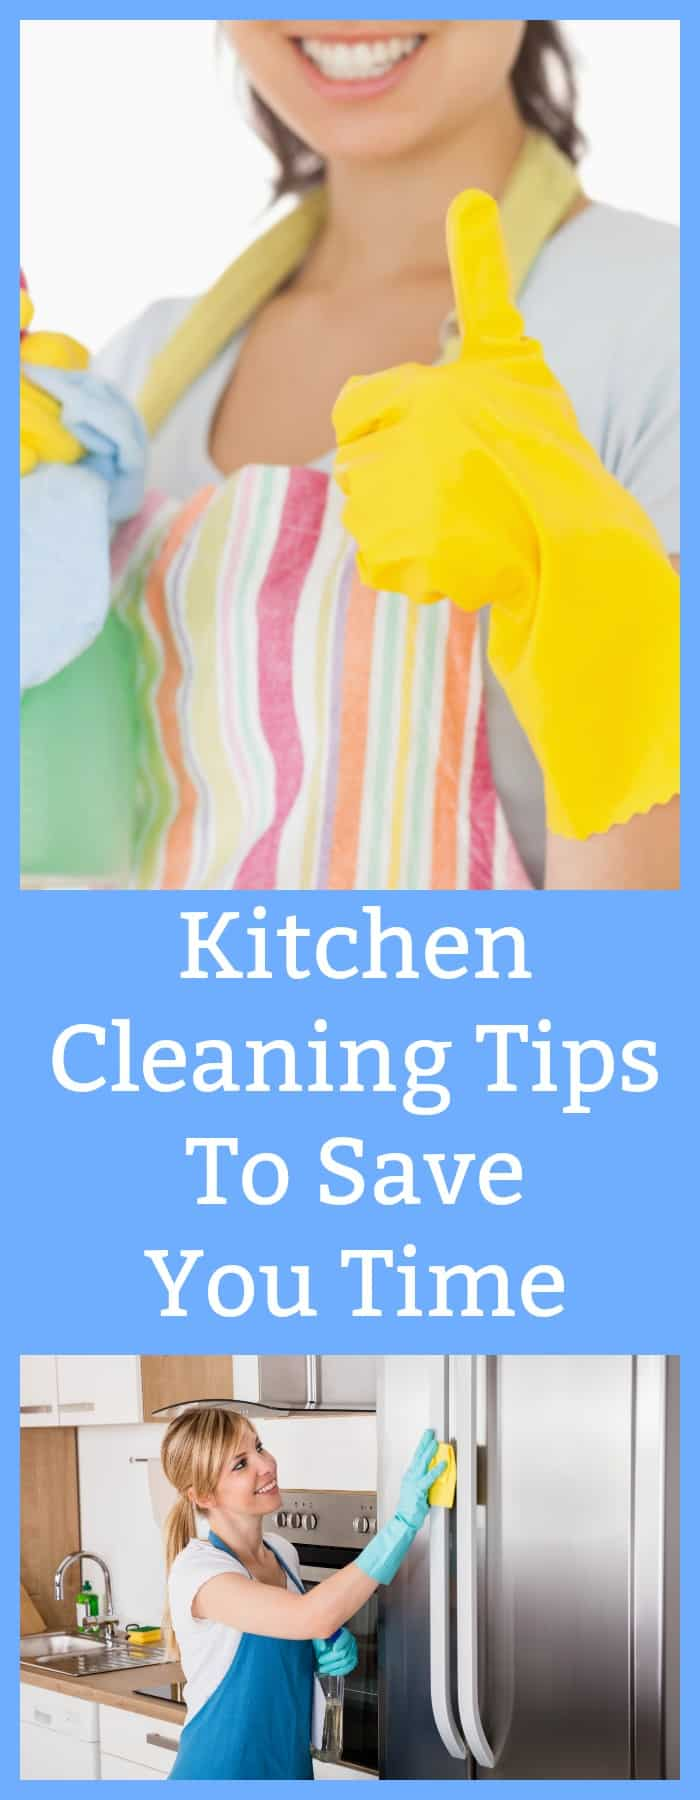 Kitchen Cleaning Tips to Save You Time